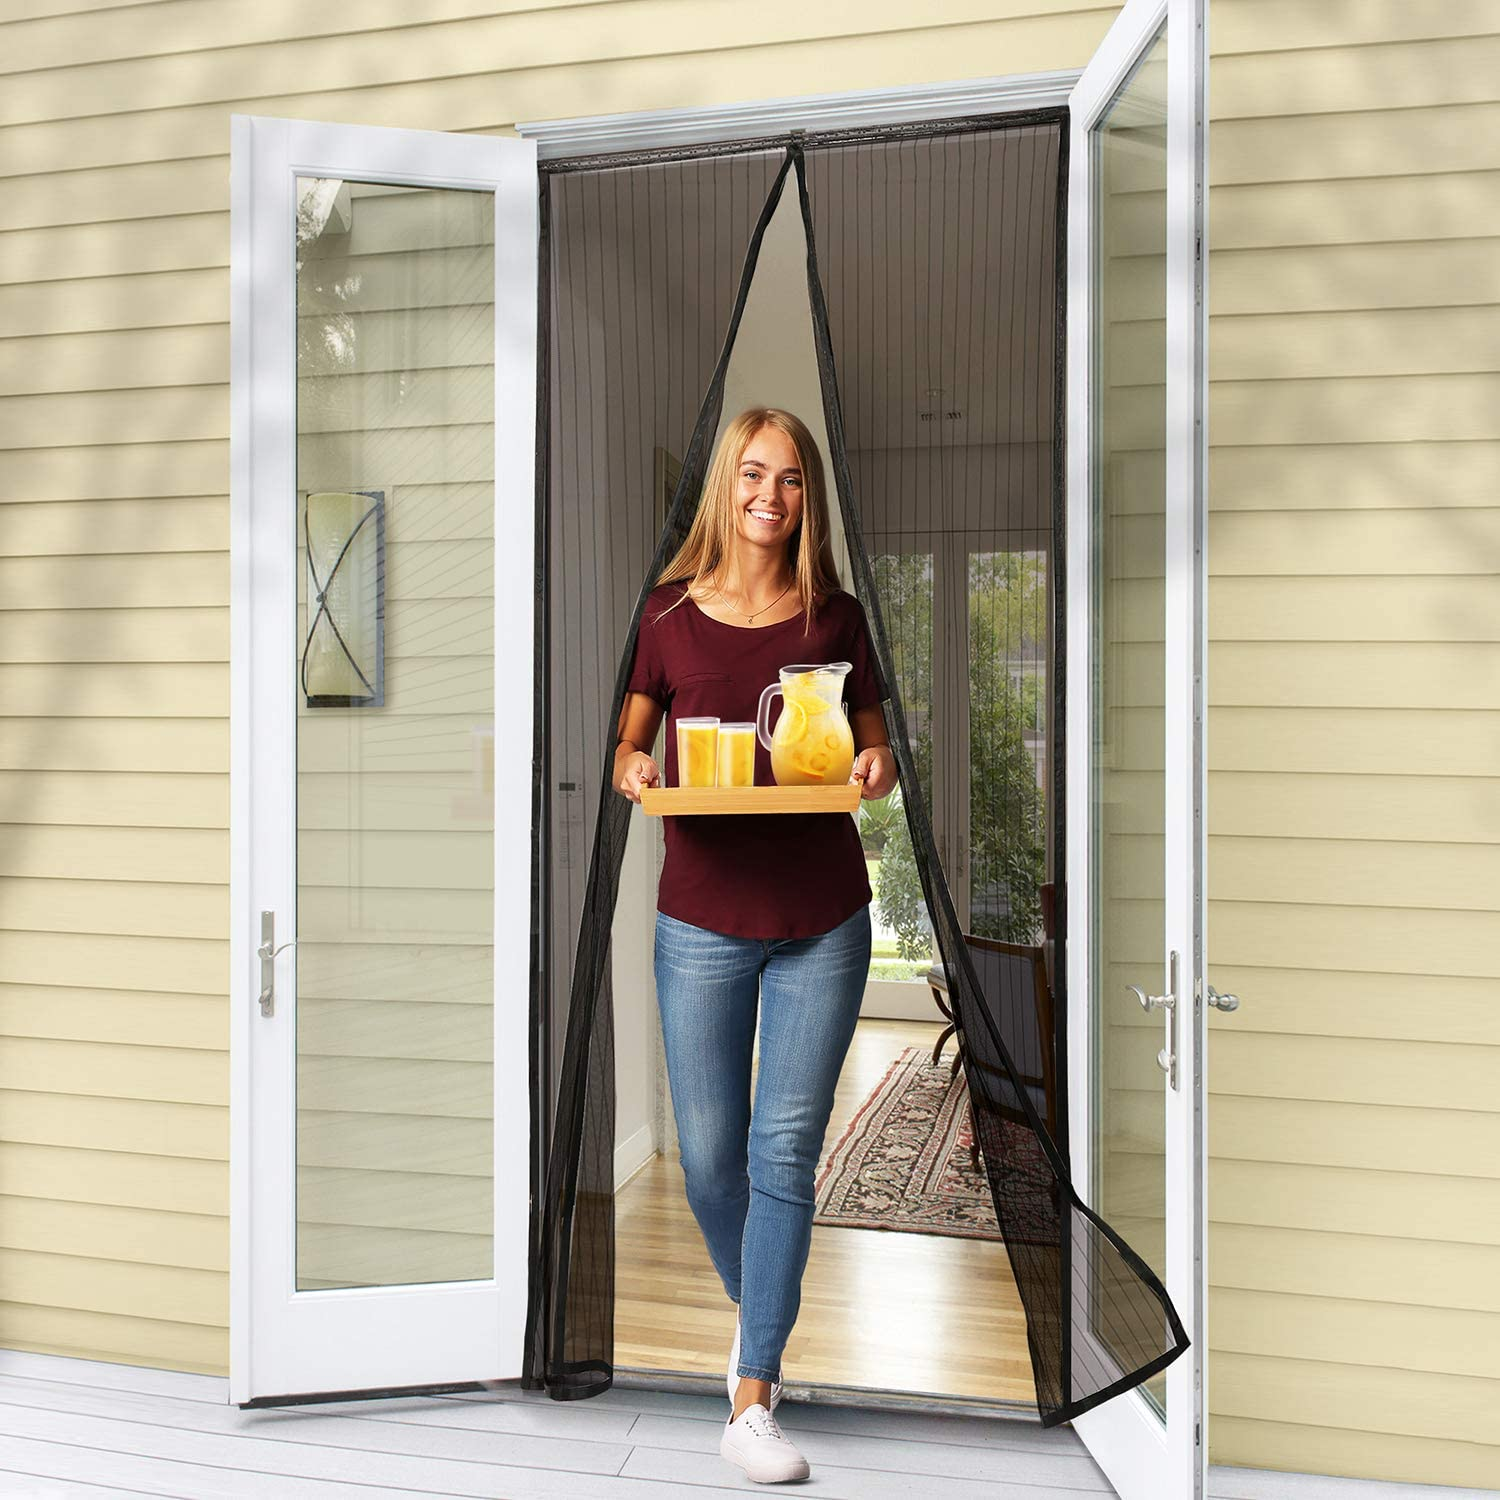 Flux Phenom Reinforced Magnetic Screen Door (Best Seller)